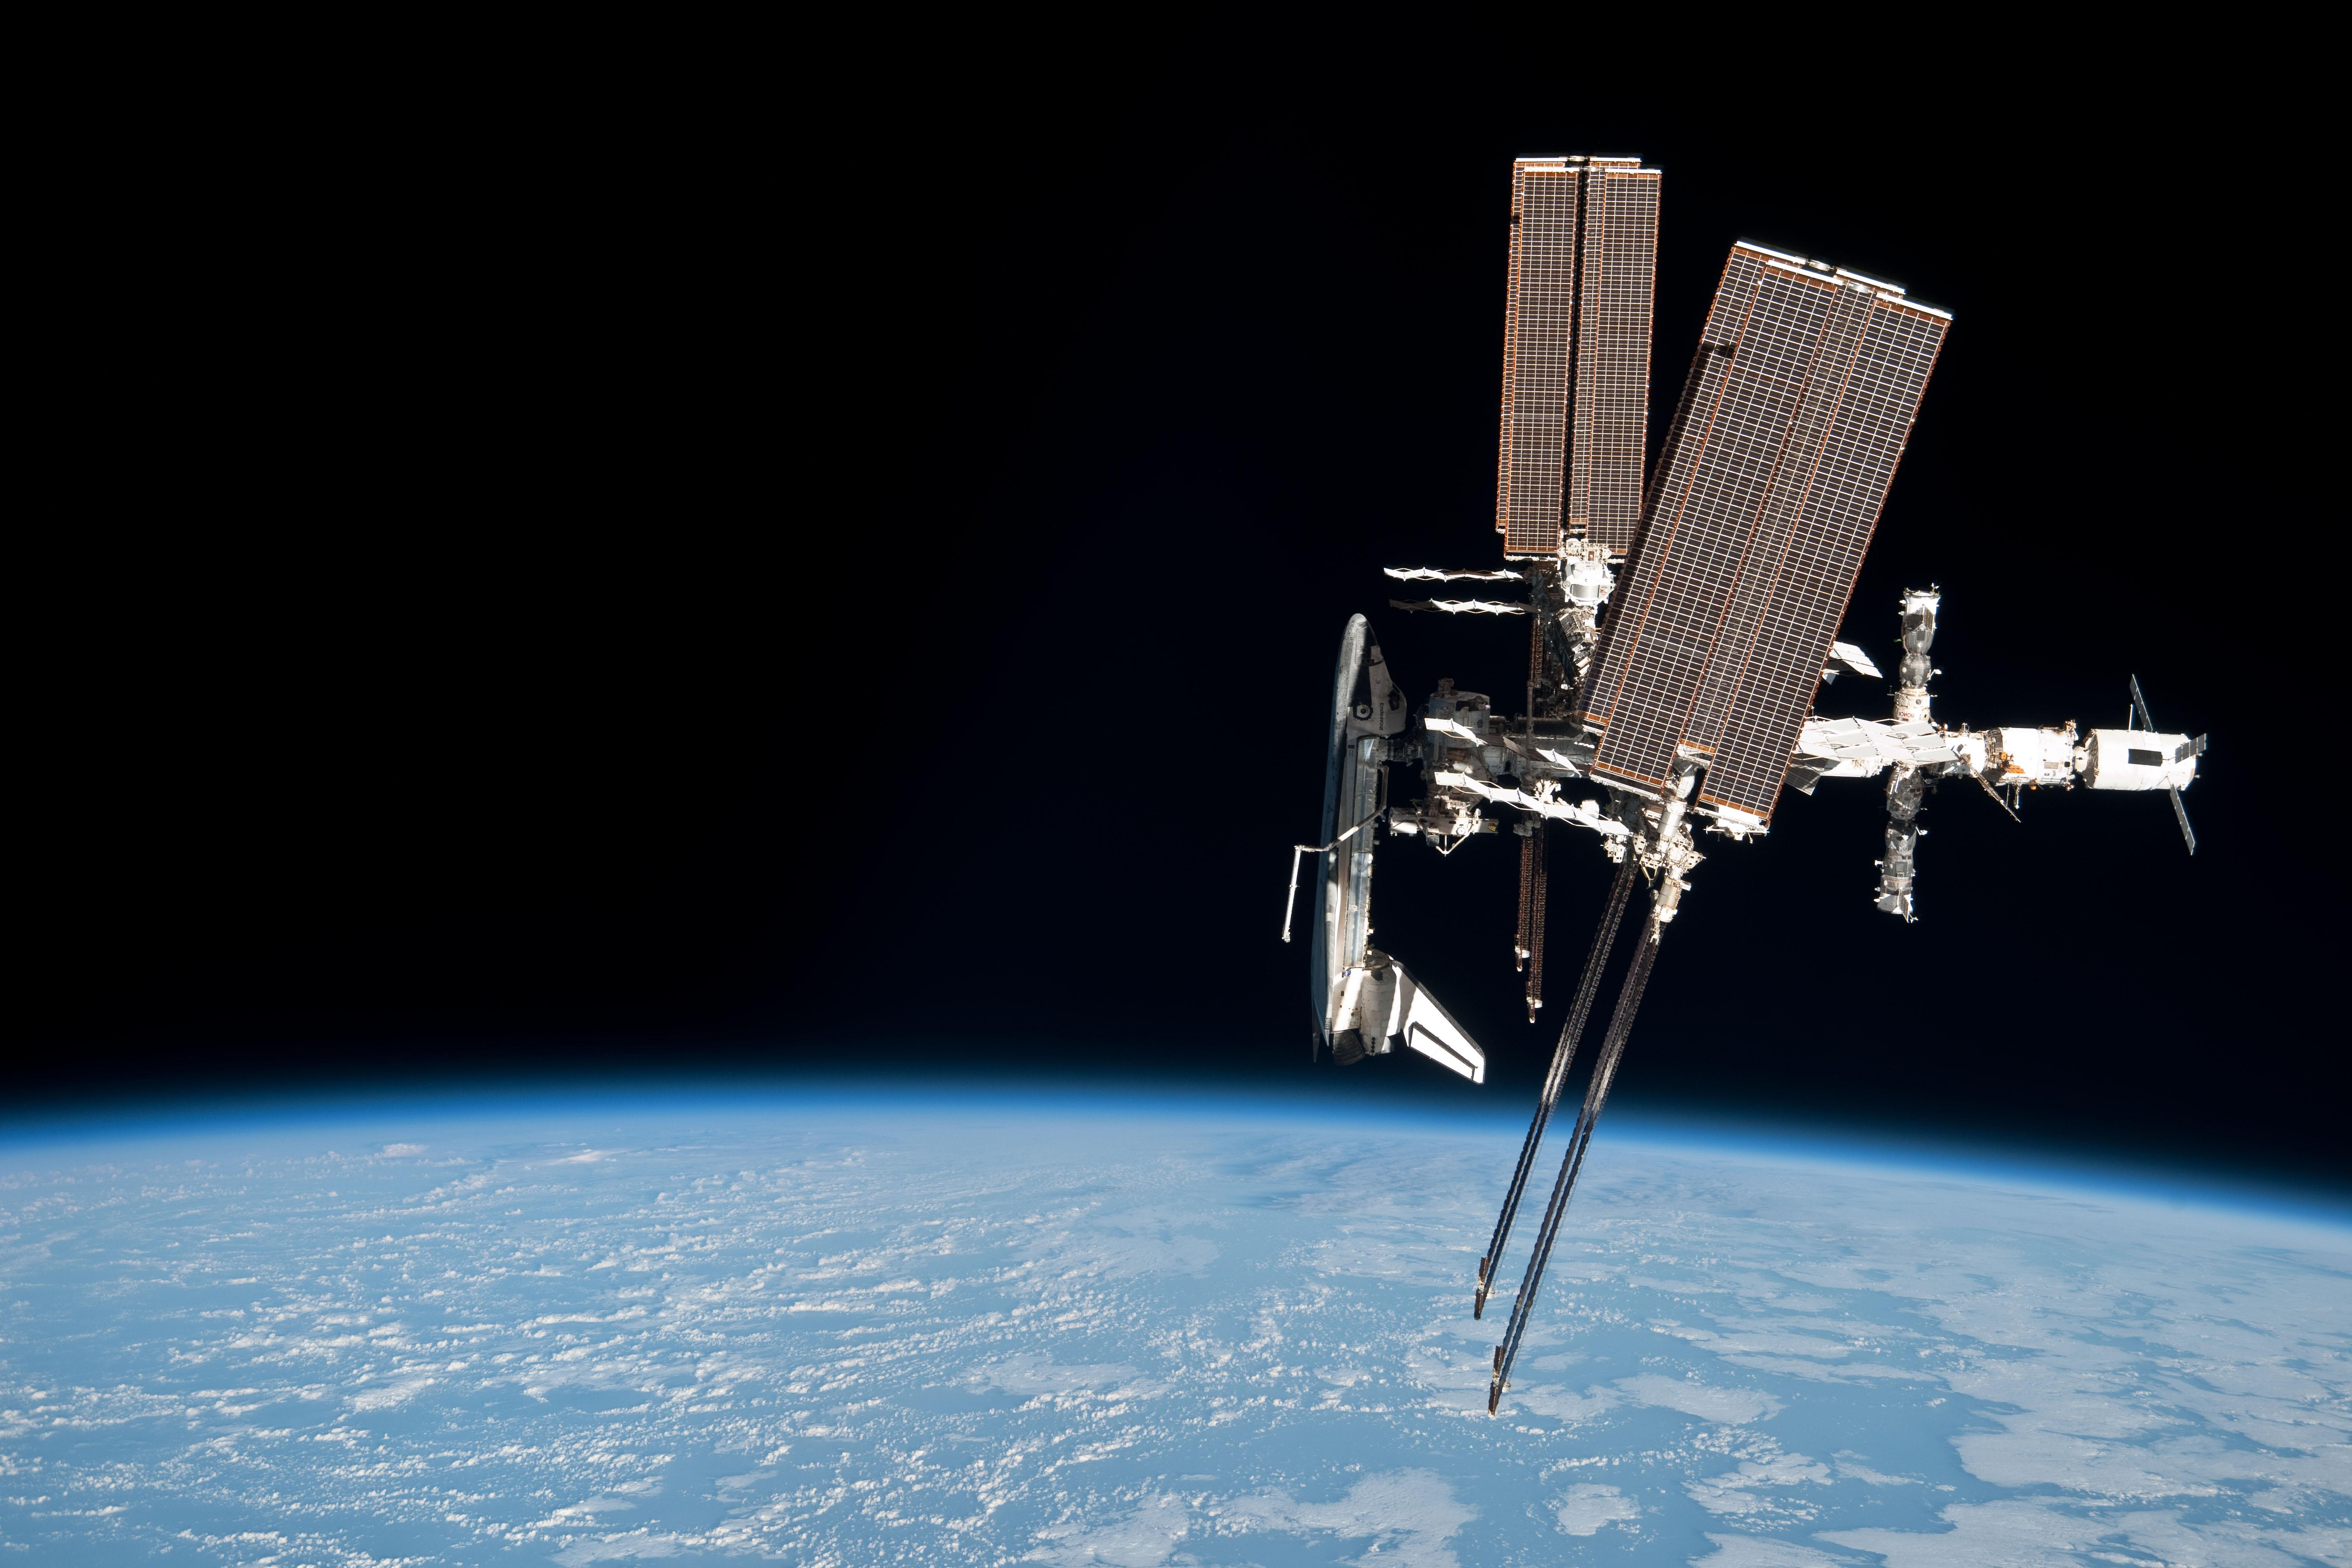 space shuttle iss - photo #26